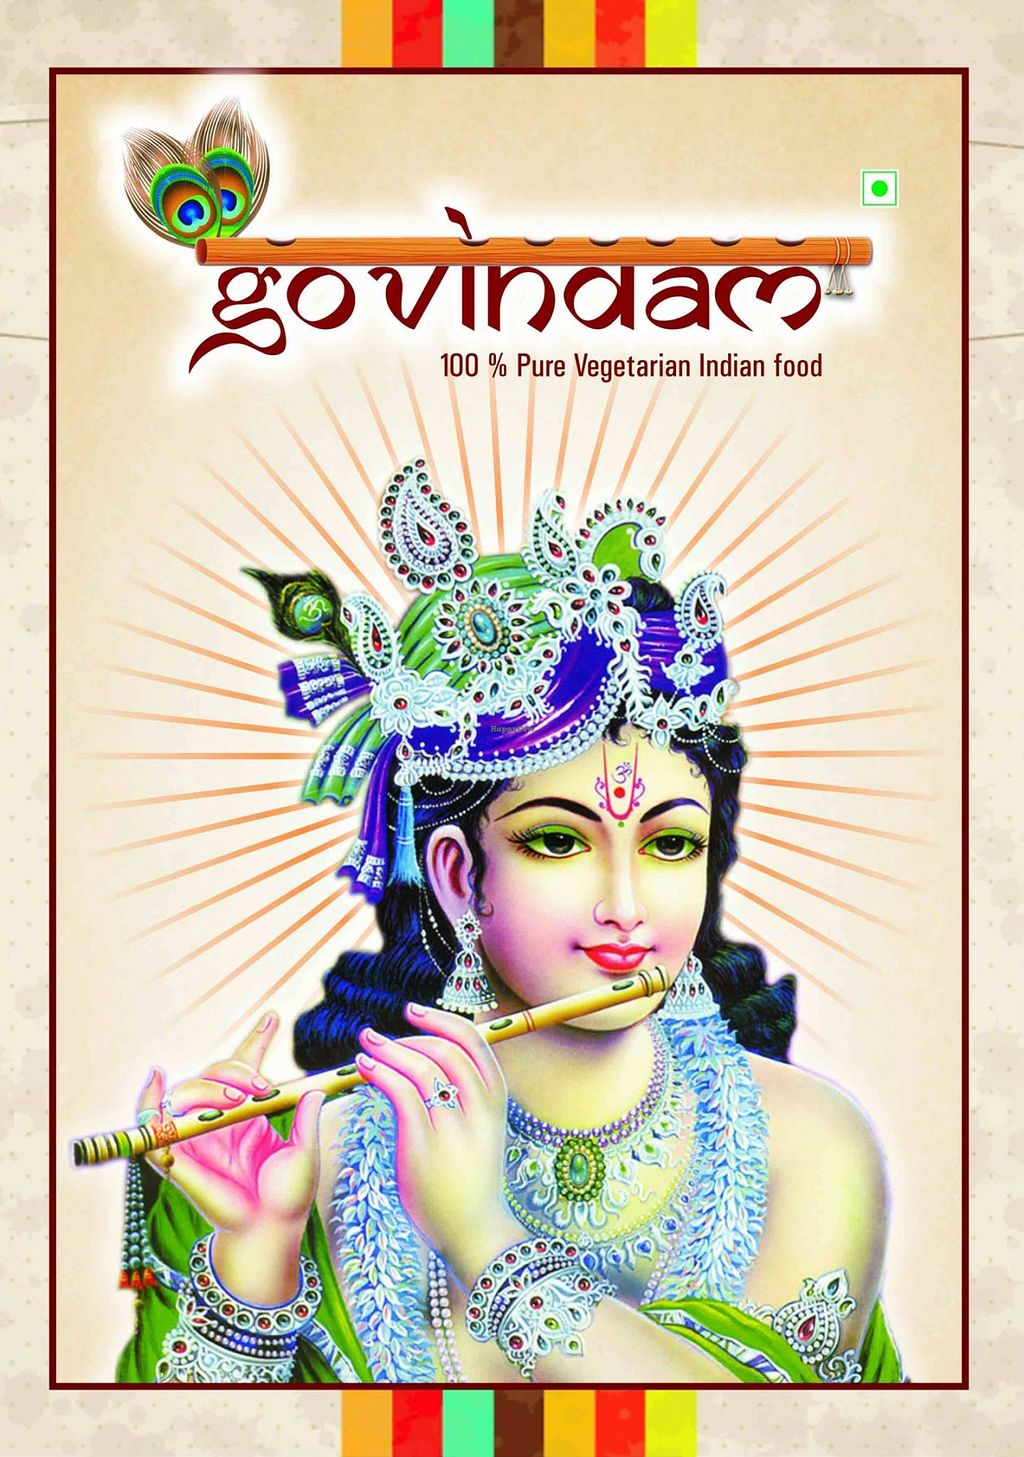 """Photo of Govindam  by <a href=""""/members/profile/Sunnyarora"""">Sunnyarora</a> <br/>Govindam <br/> August 29, 2015  - <a href='/contact/abuse/image/62607/115612'>Report</a>"""